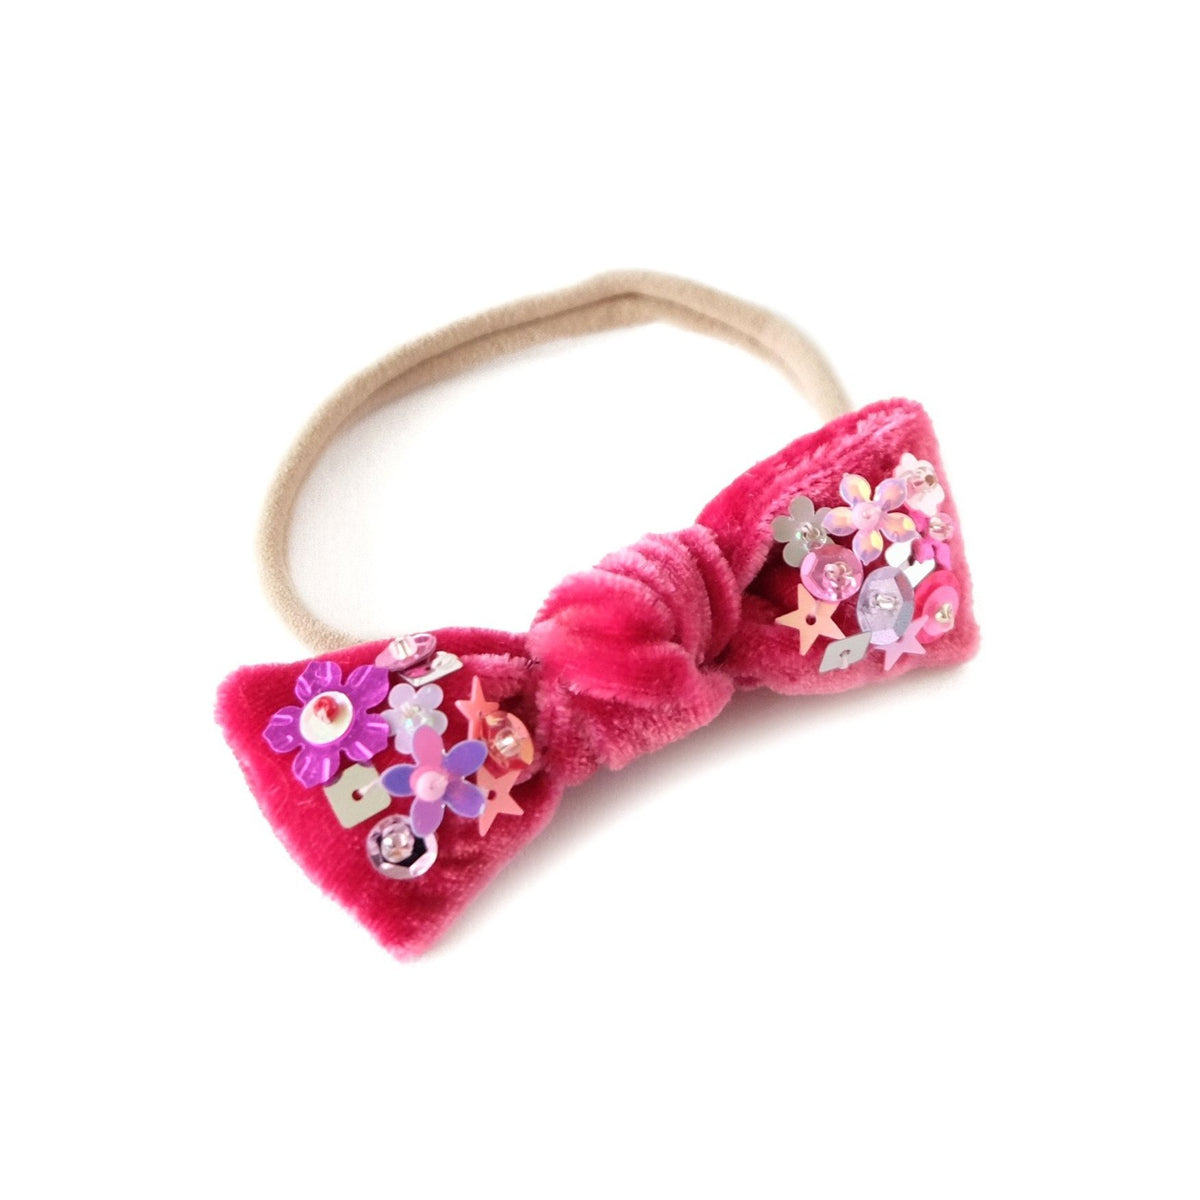 Baby headband in carmine red embellished with sequin.